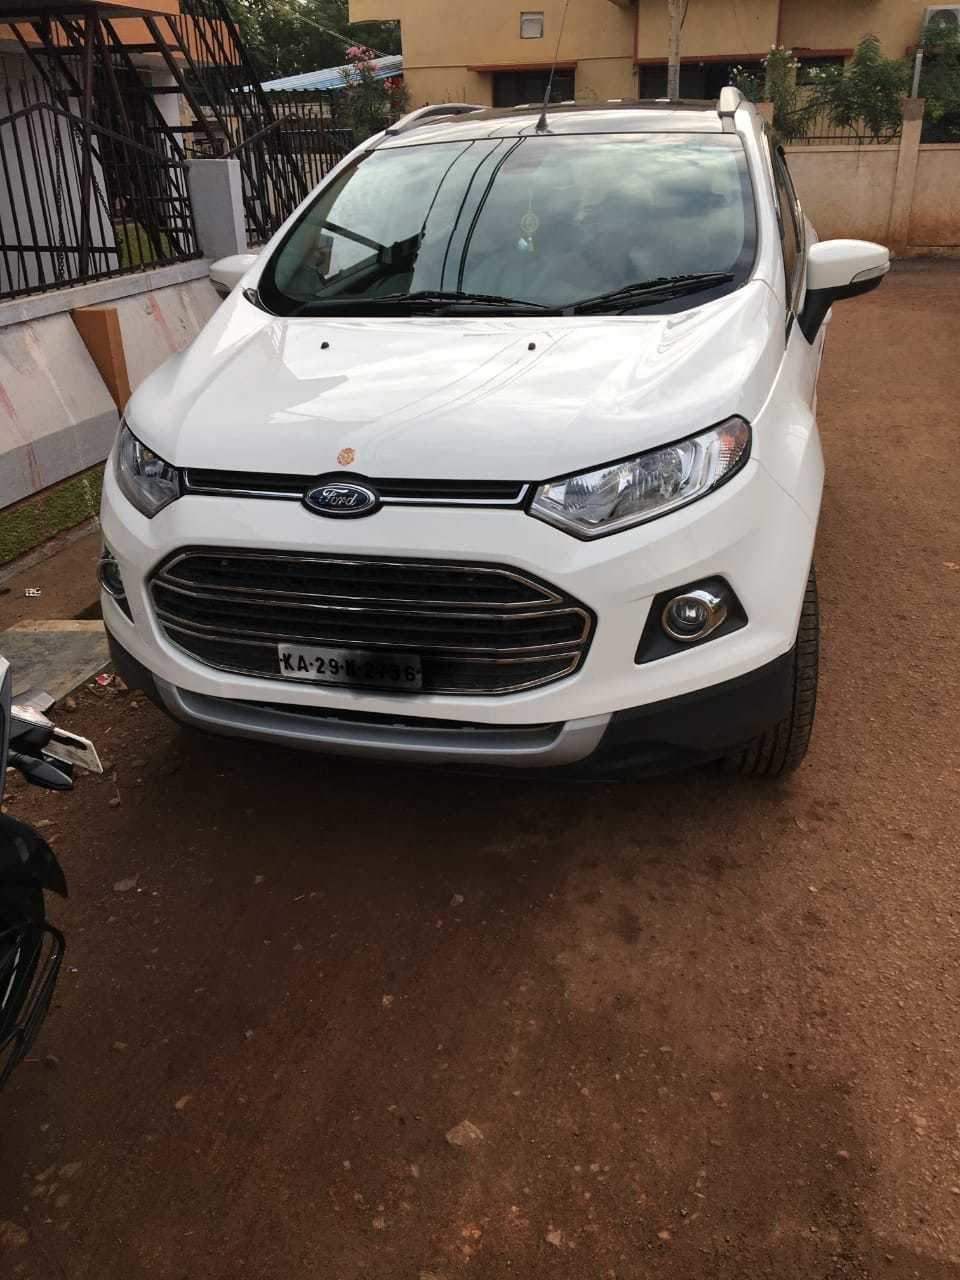 Ford Ecosport Rear Left Rim